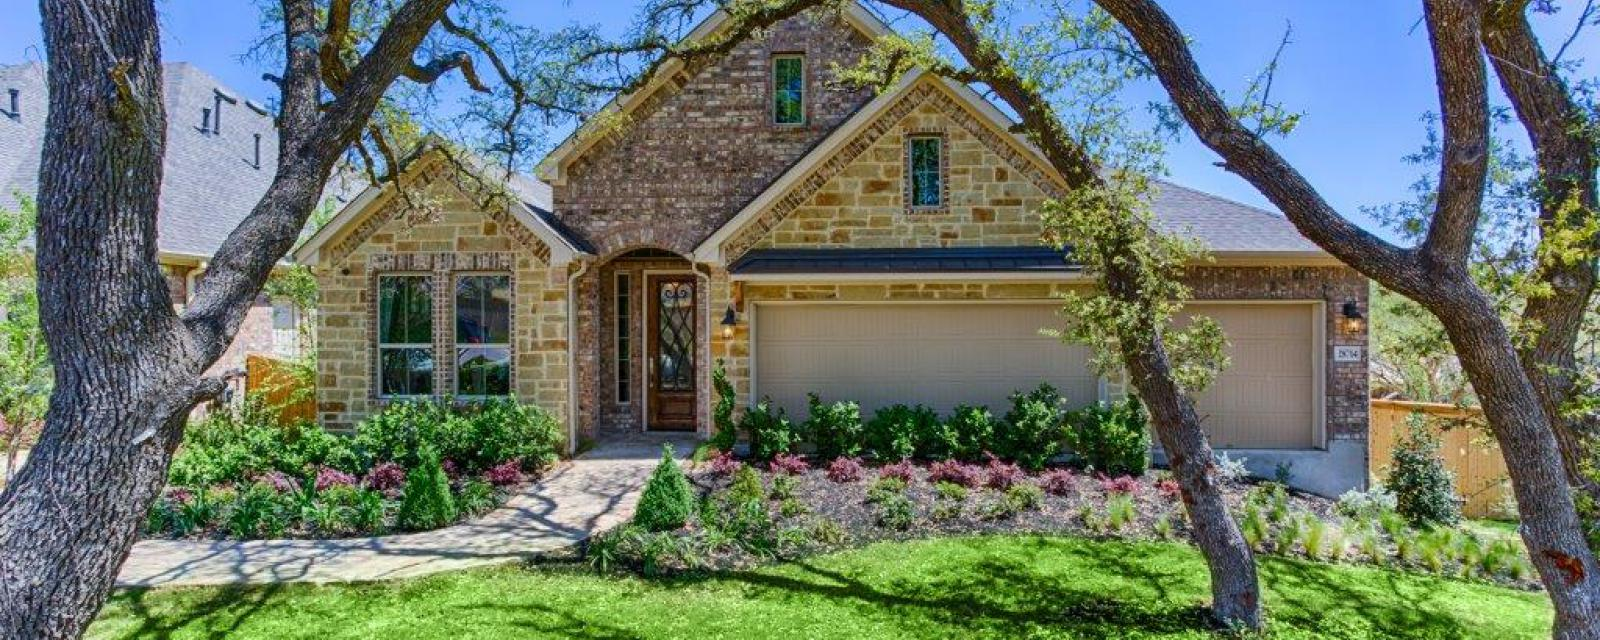 Front Gate At Fair Oaks Ranch New Homes San Antonio